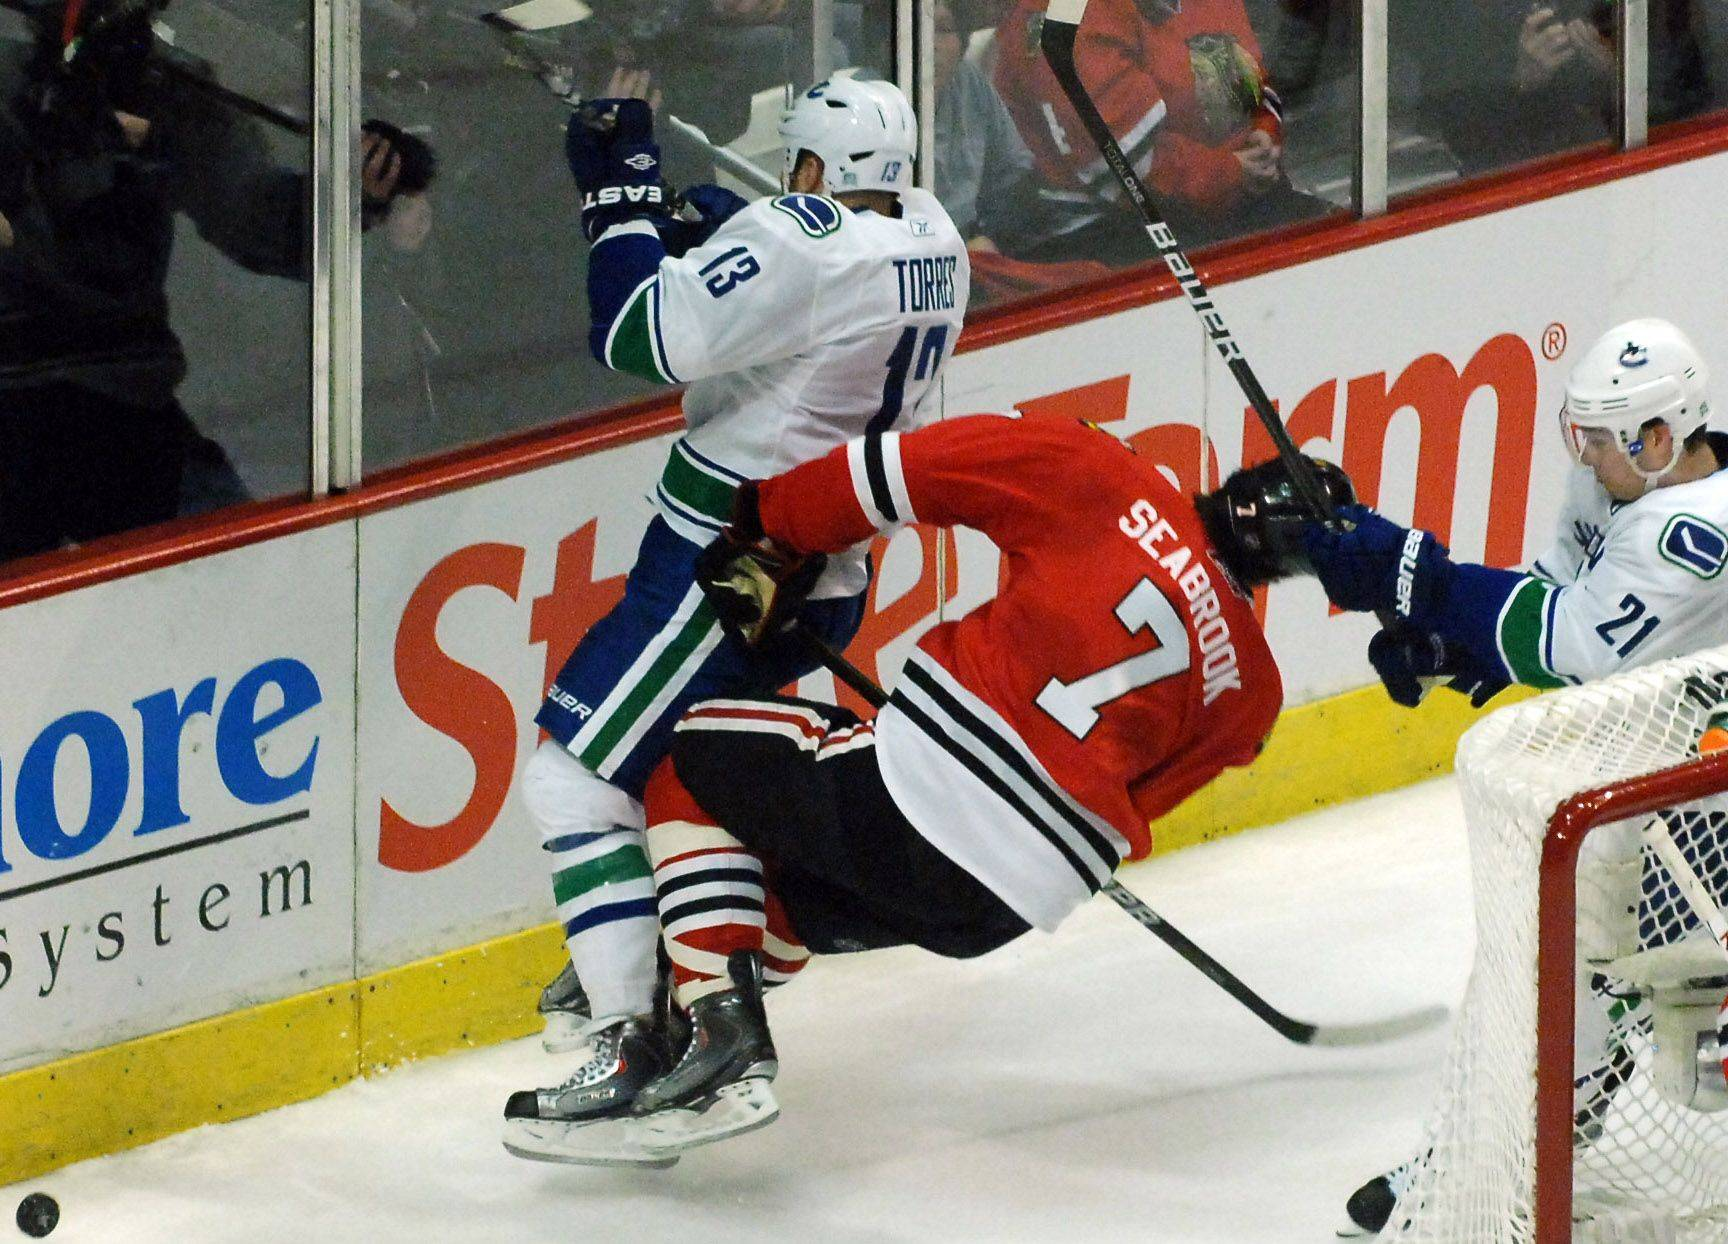 Vancouver Canucks left wing Raffi Torres, No. 13, got a 2-minute penalty for hitting Brent Seabrook during Game 3 in Chicago. The NHL didn't suspend Torres for the hit.